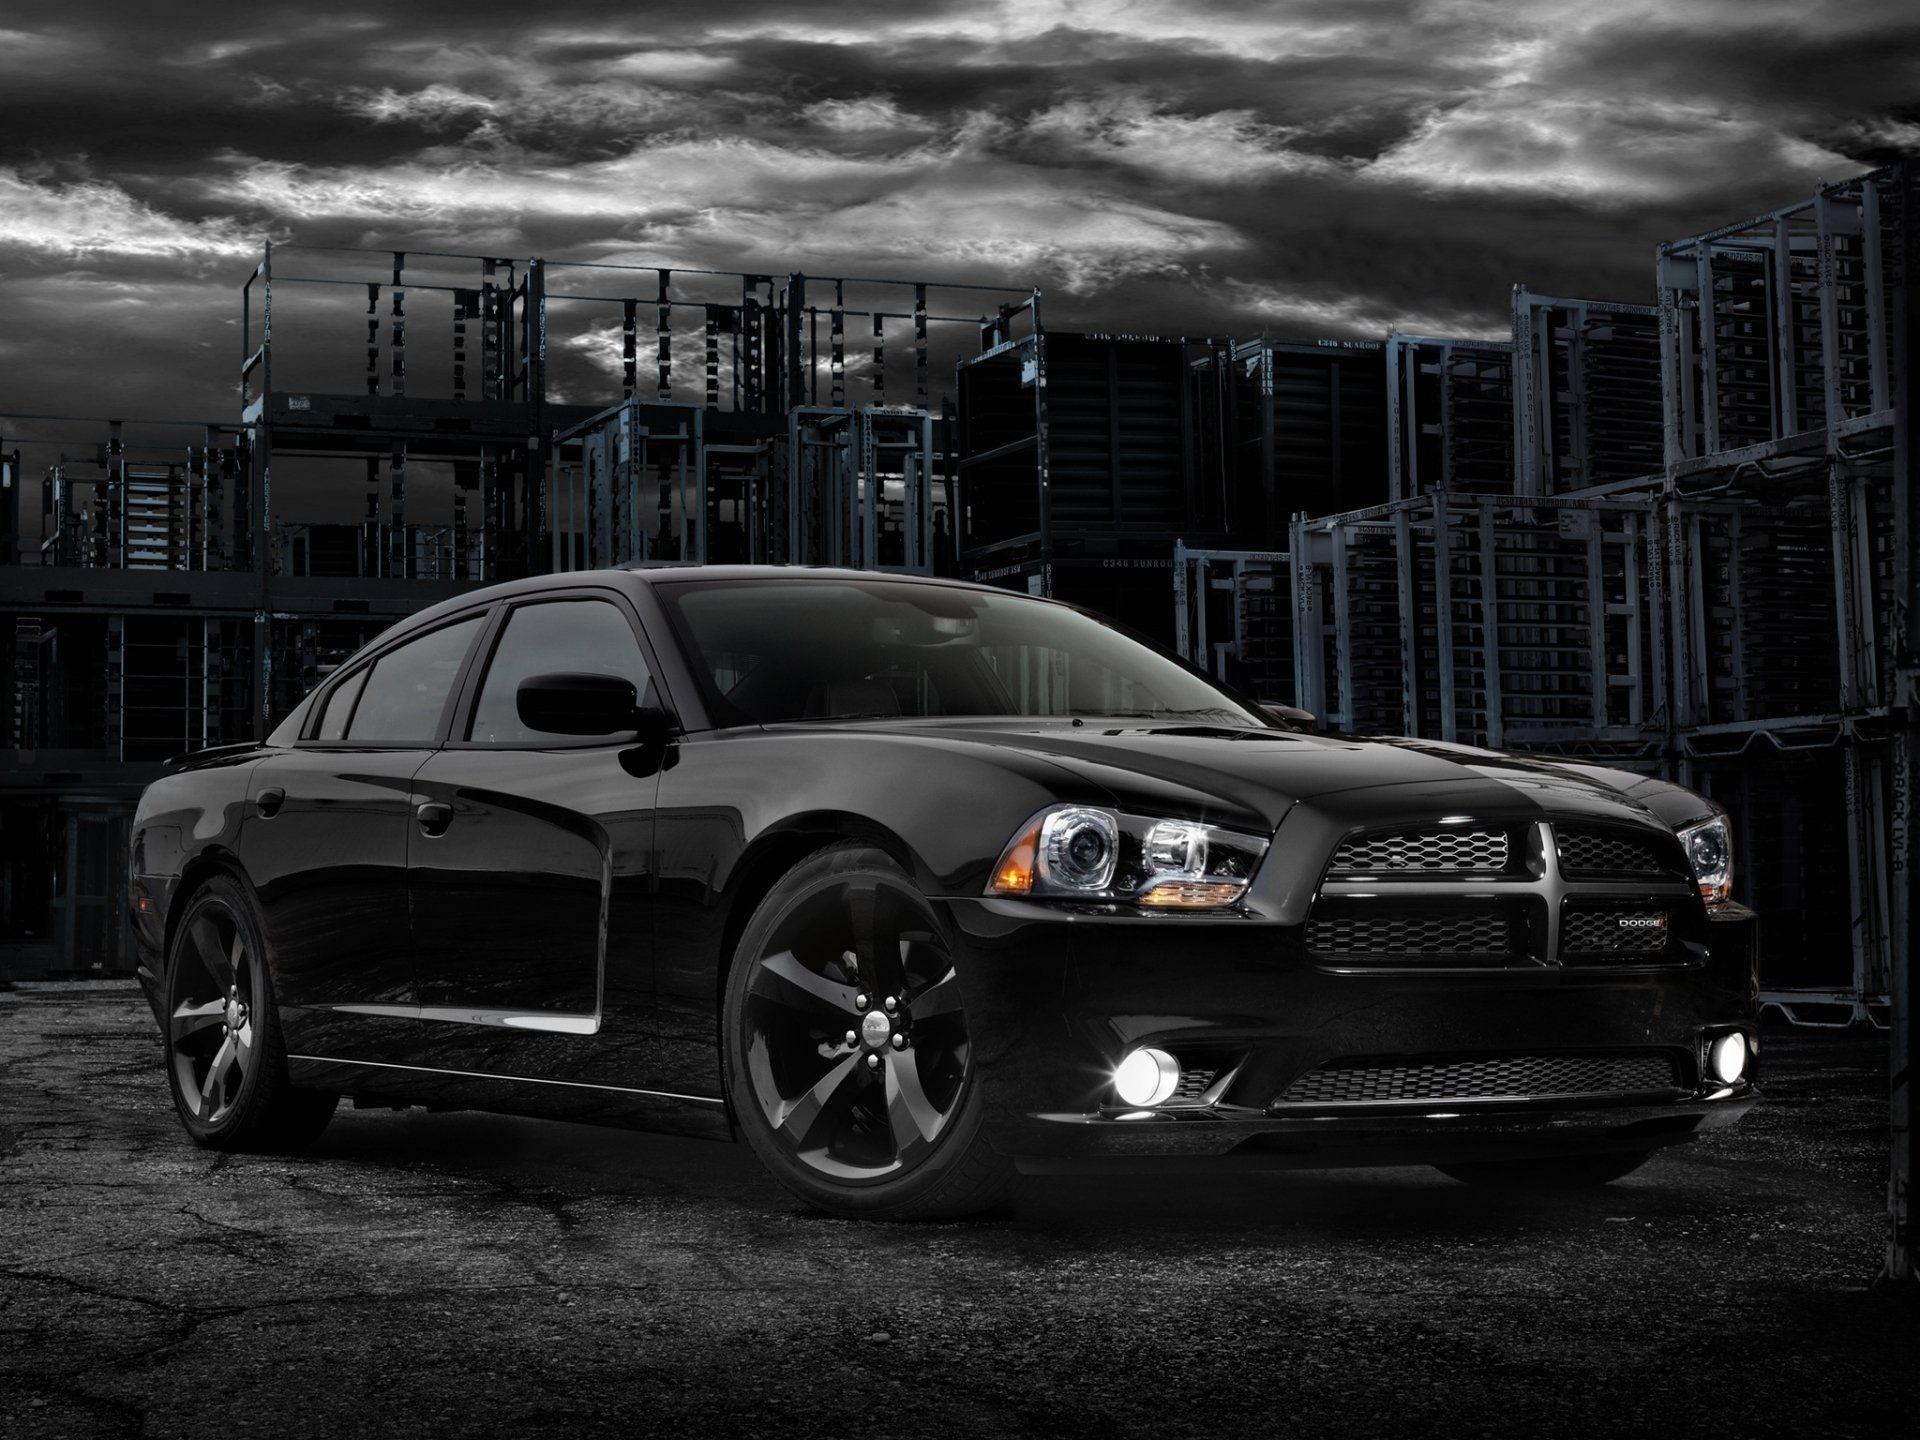 111 Dodge Charger HD Wallpapers